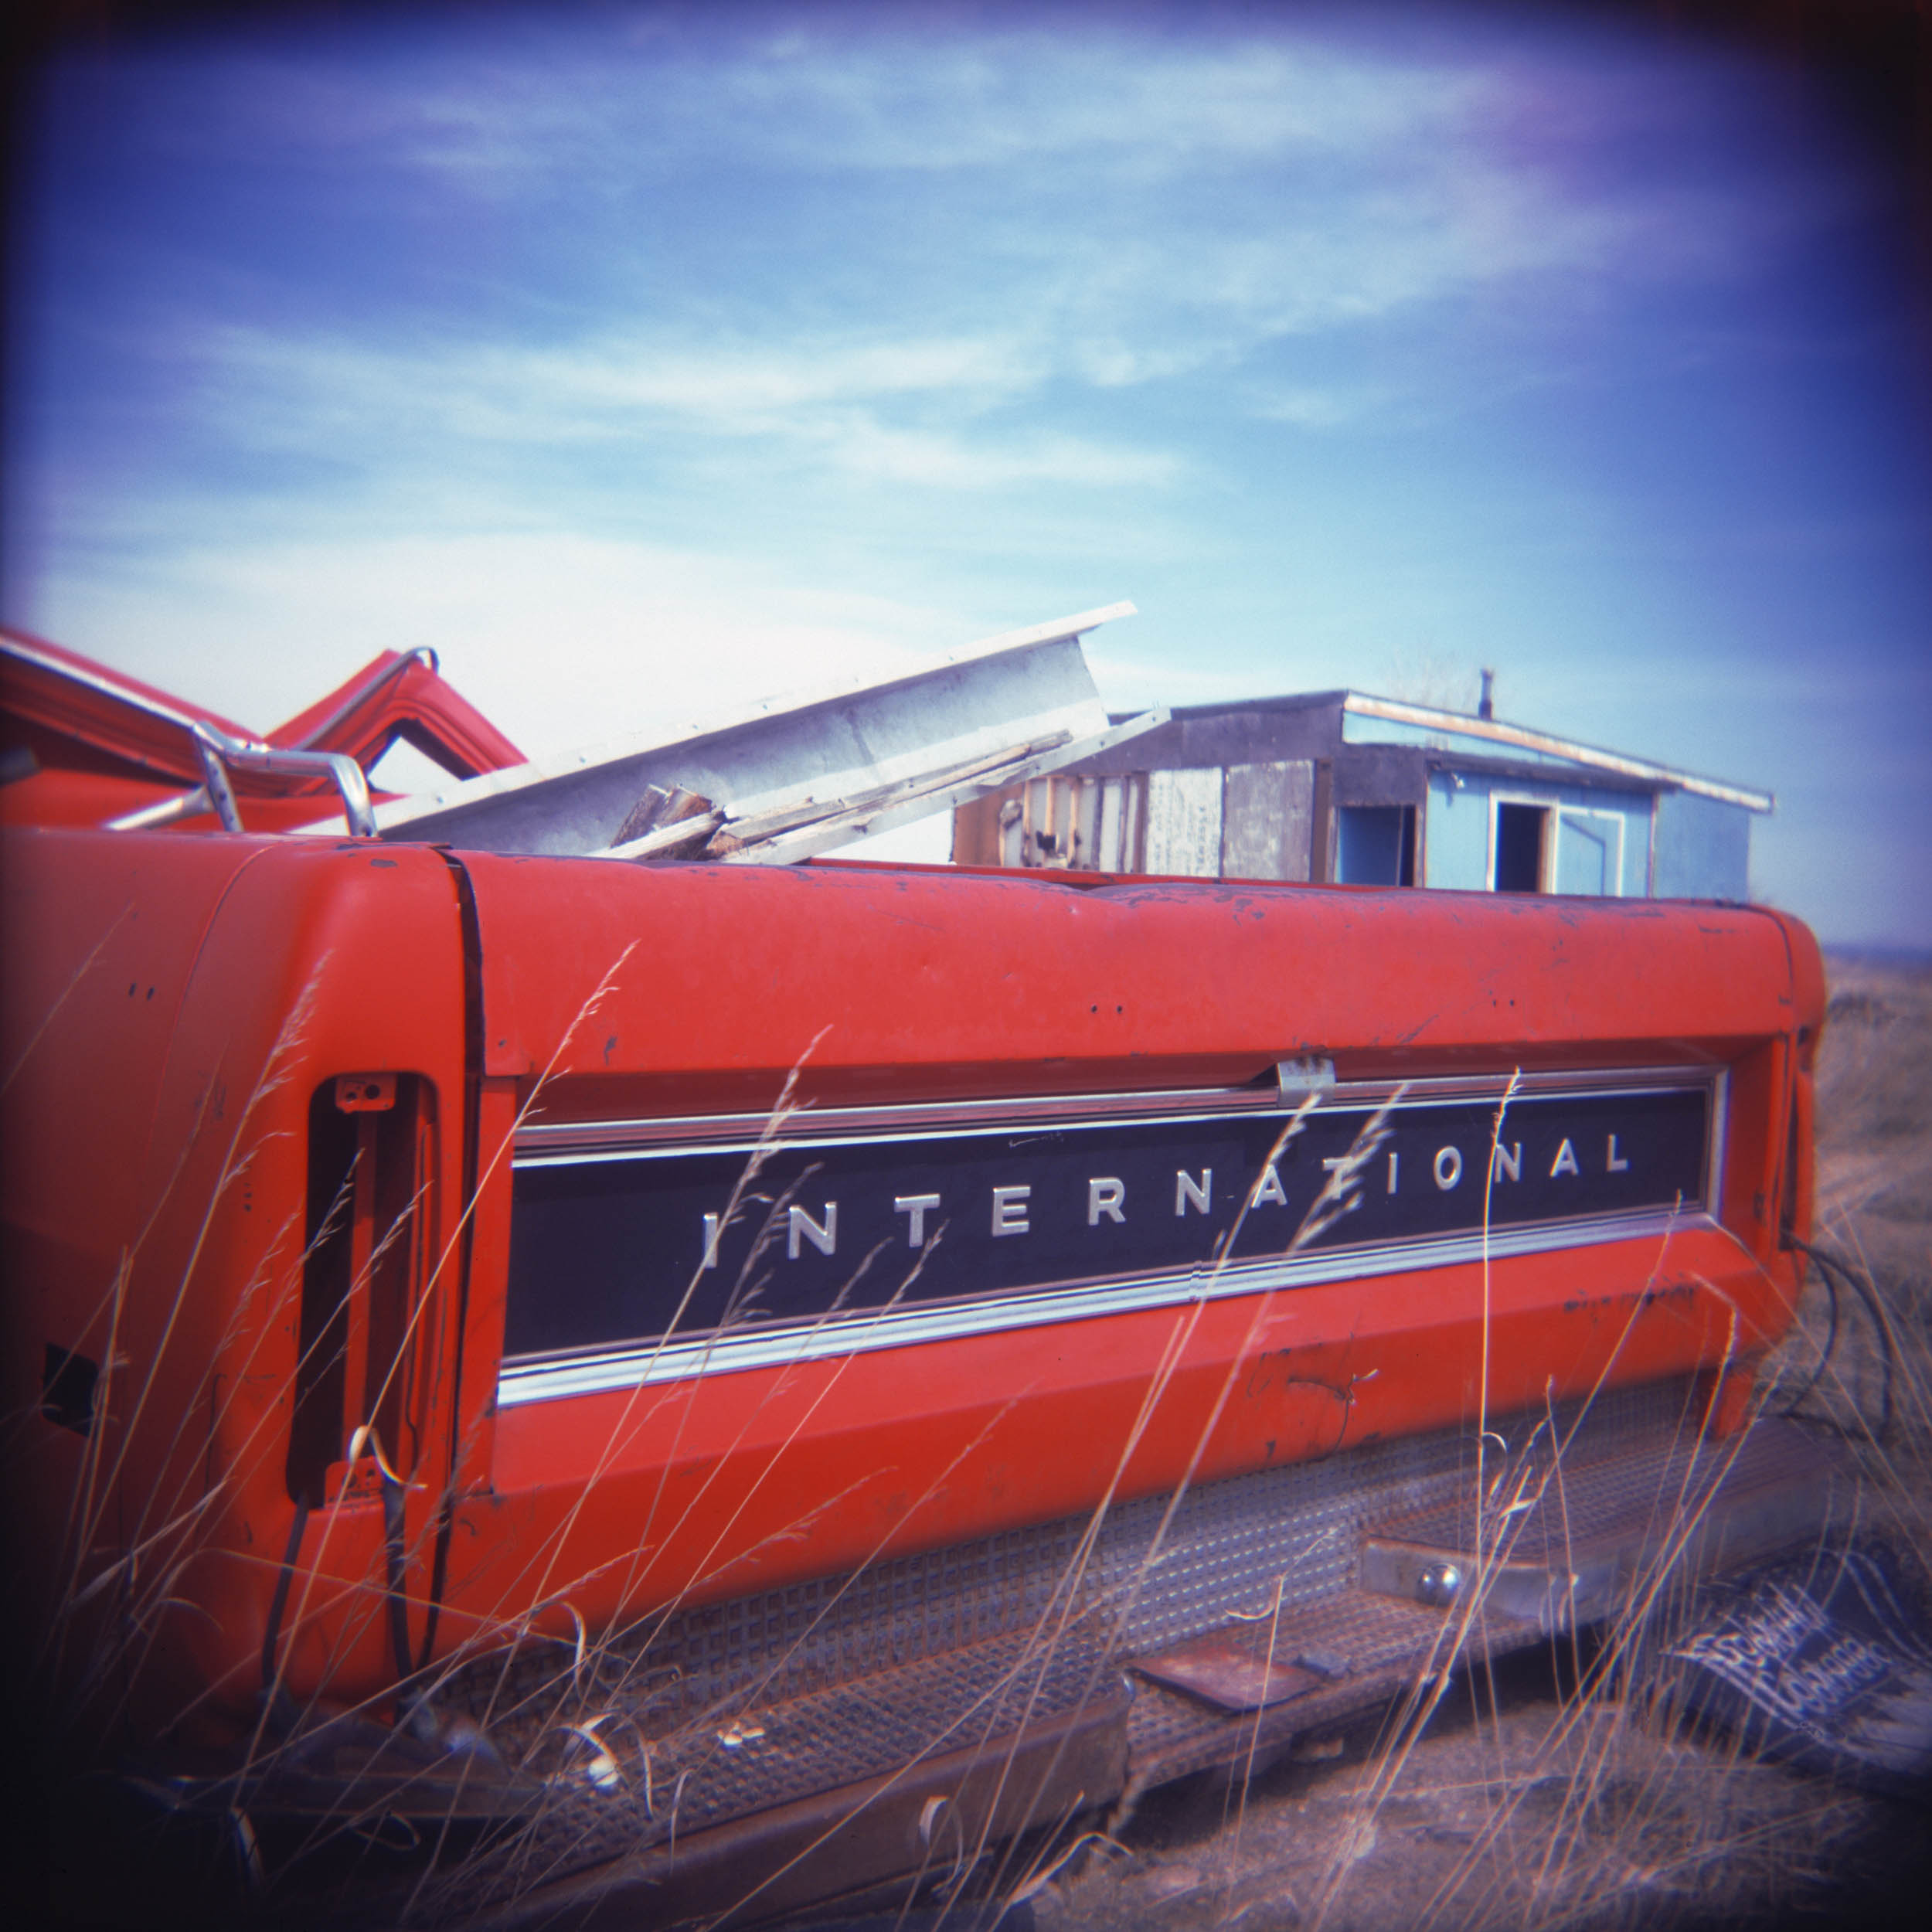 International, Wyoming, Holga